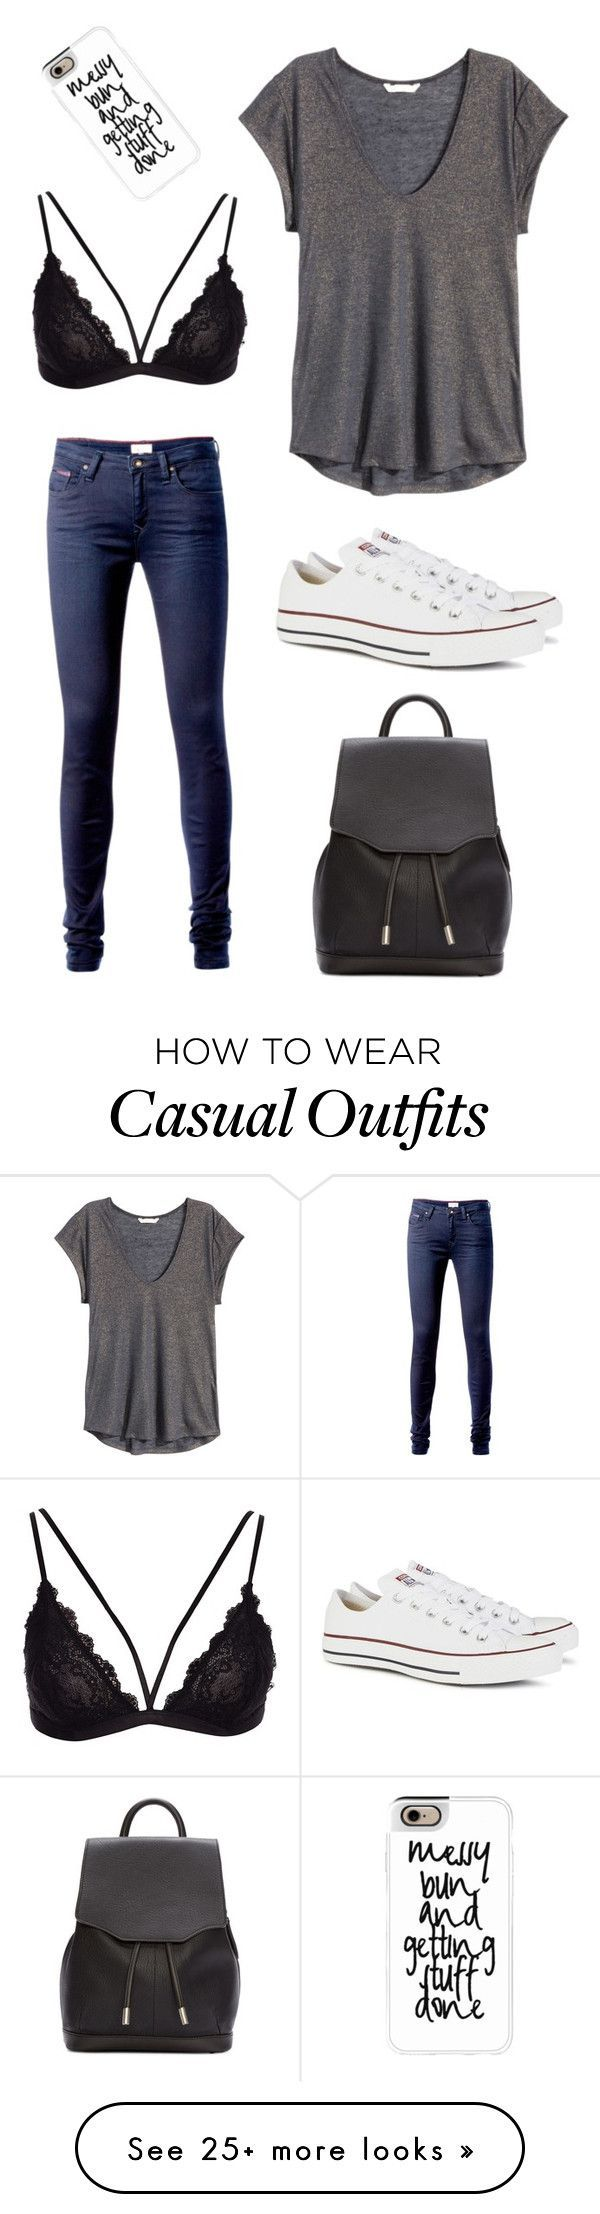 "Take your trip with Glamulet charms""Casual"" by caro-stegherr on Polyvore featuring Tommy Hilfiger, H&M, Converse, Casetify and rag & bone"